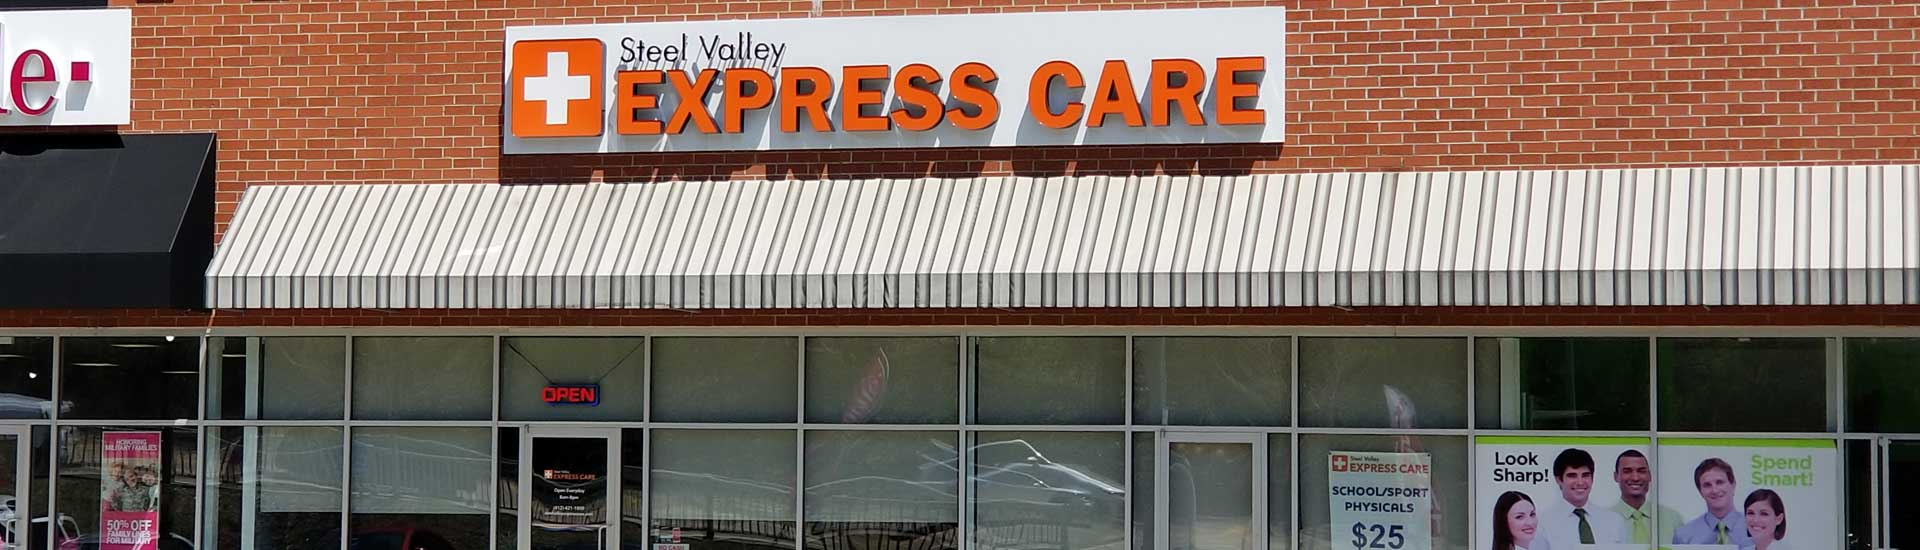 Steel Valley Express Urgent Care